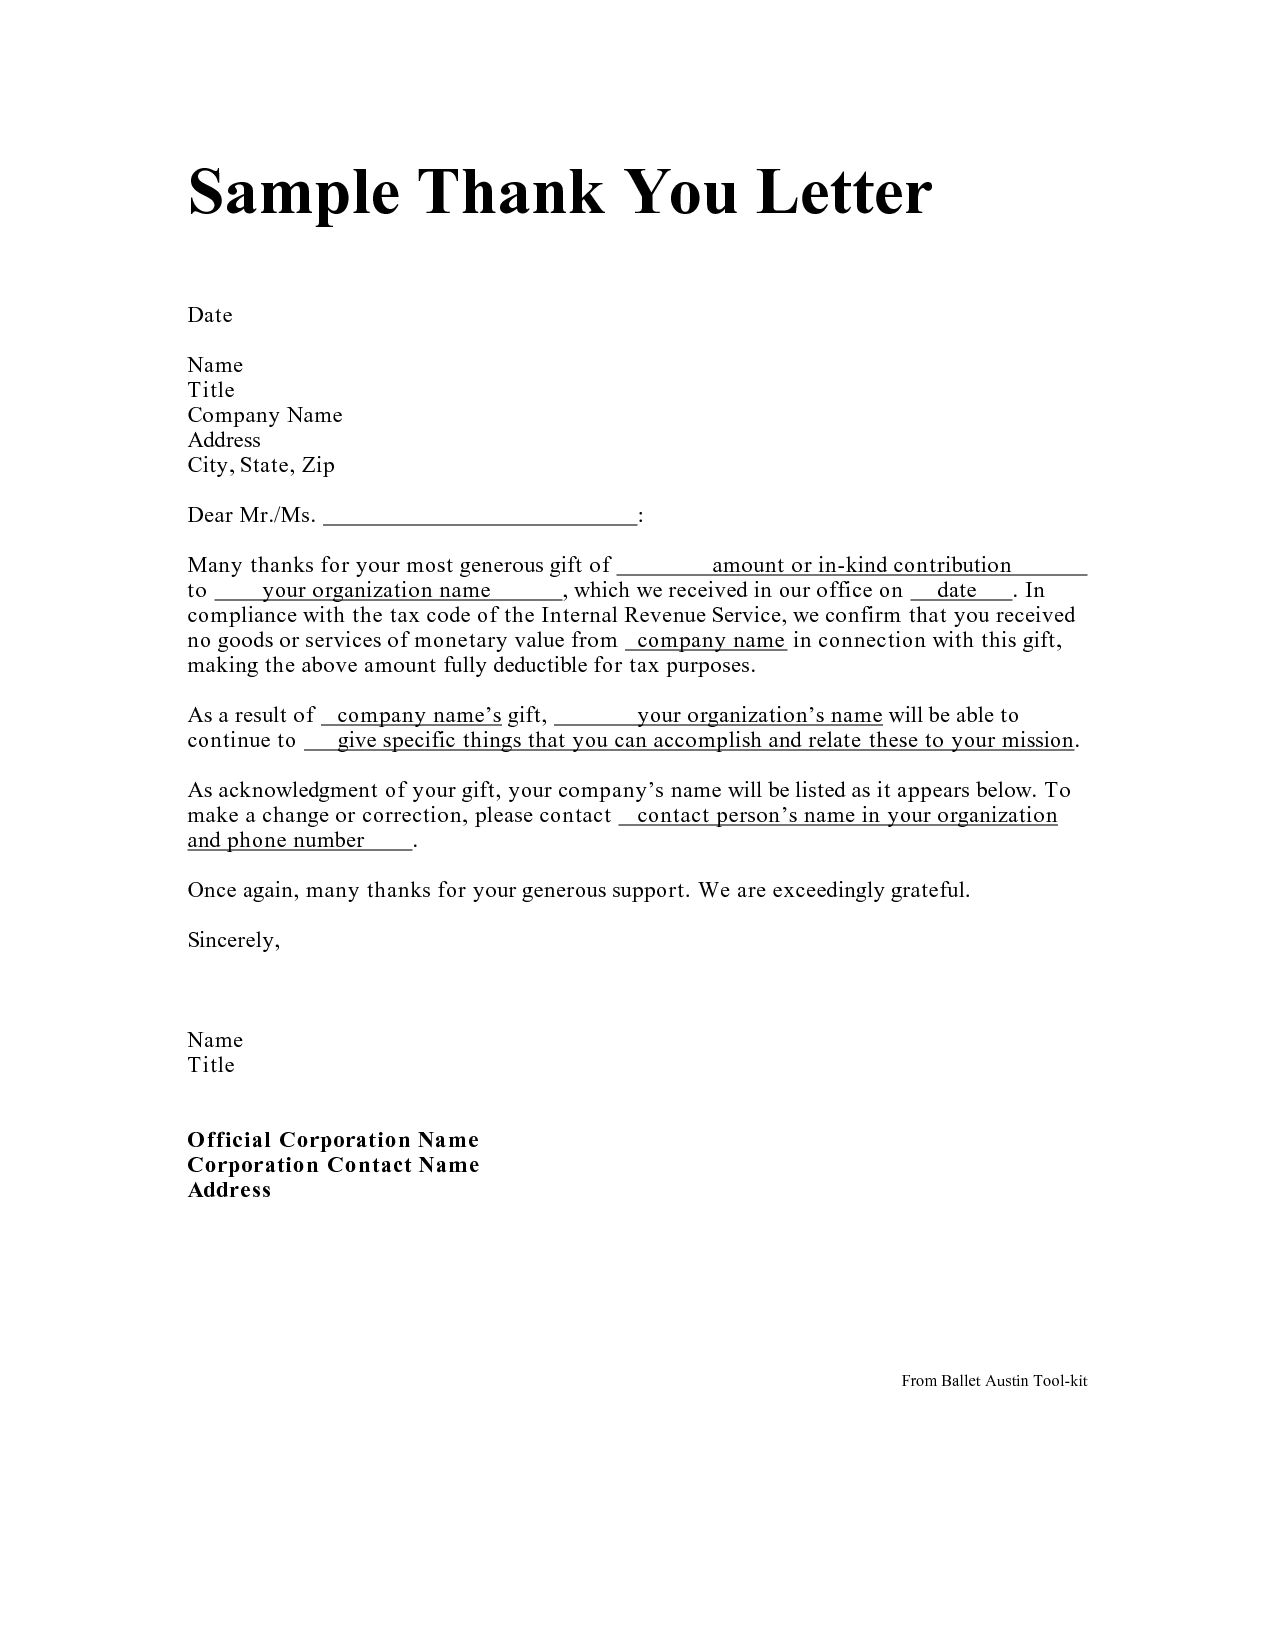 Personal Thank You Letter   Personal Thank You Letter Samples, Writing  Thank You Notes, Thank You Note Examples.